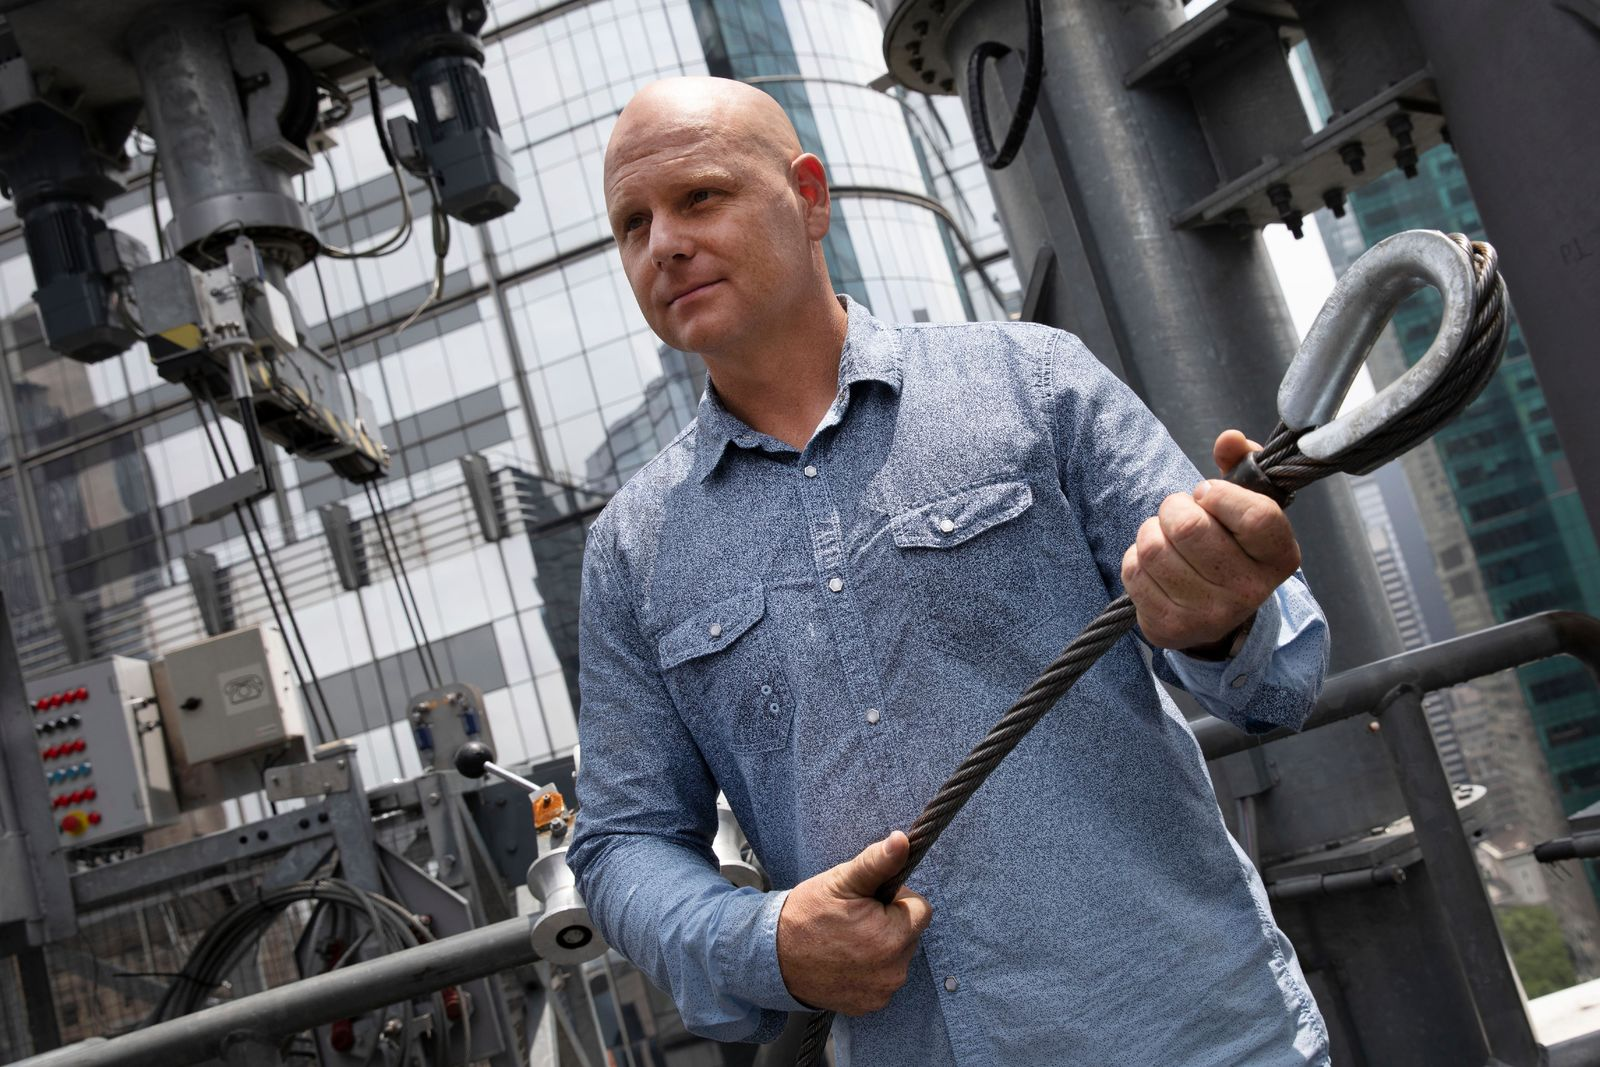 Aerialist Nik Wallenda talks with the media about his planned high-wire act, Thursday, June 20, 2019 in New York. Wallenda and his sister Lijana will cross Times Square on a high wire on Sunday. He is holding a cable similar to the one that will stretch across the square. (AP Photo/Mark Lennihan)